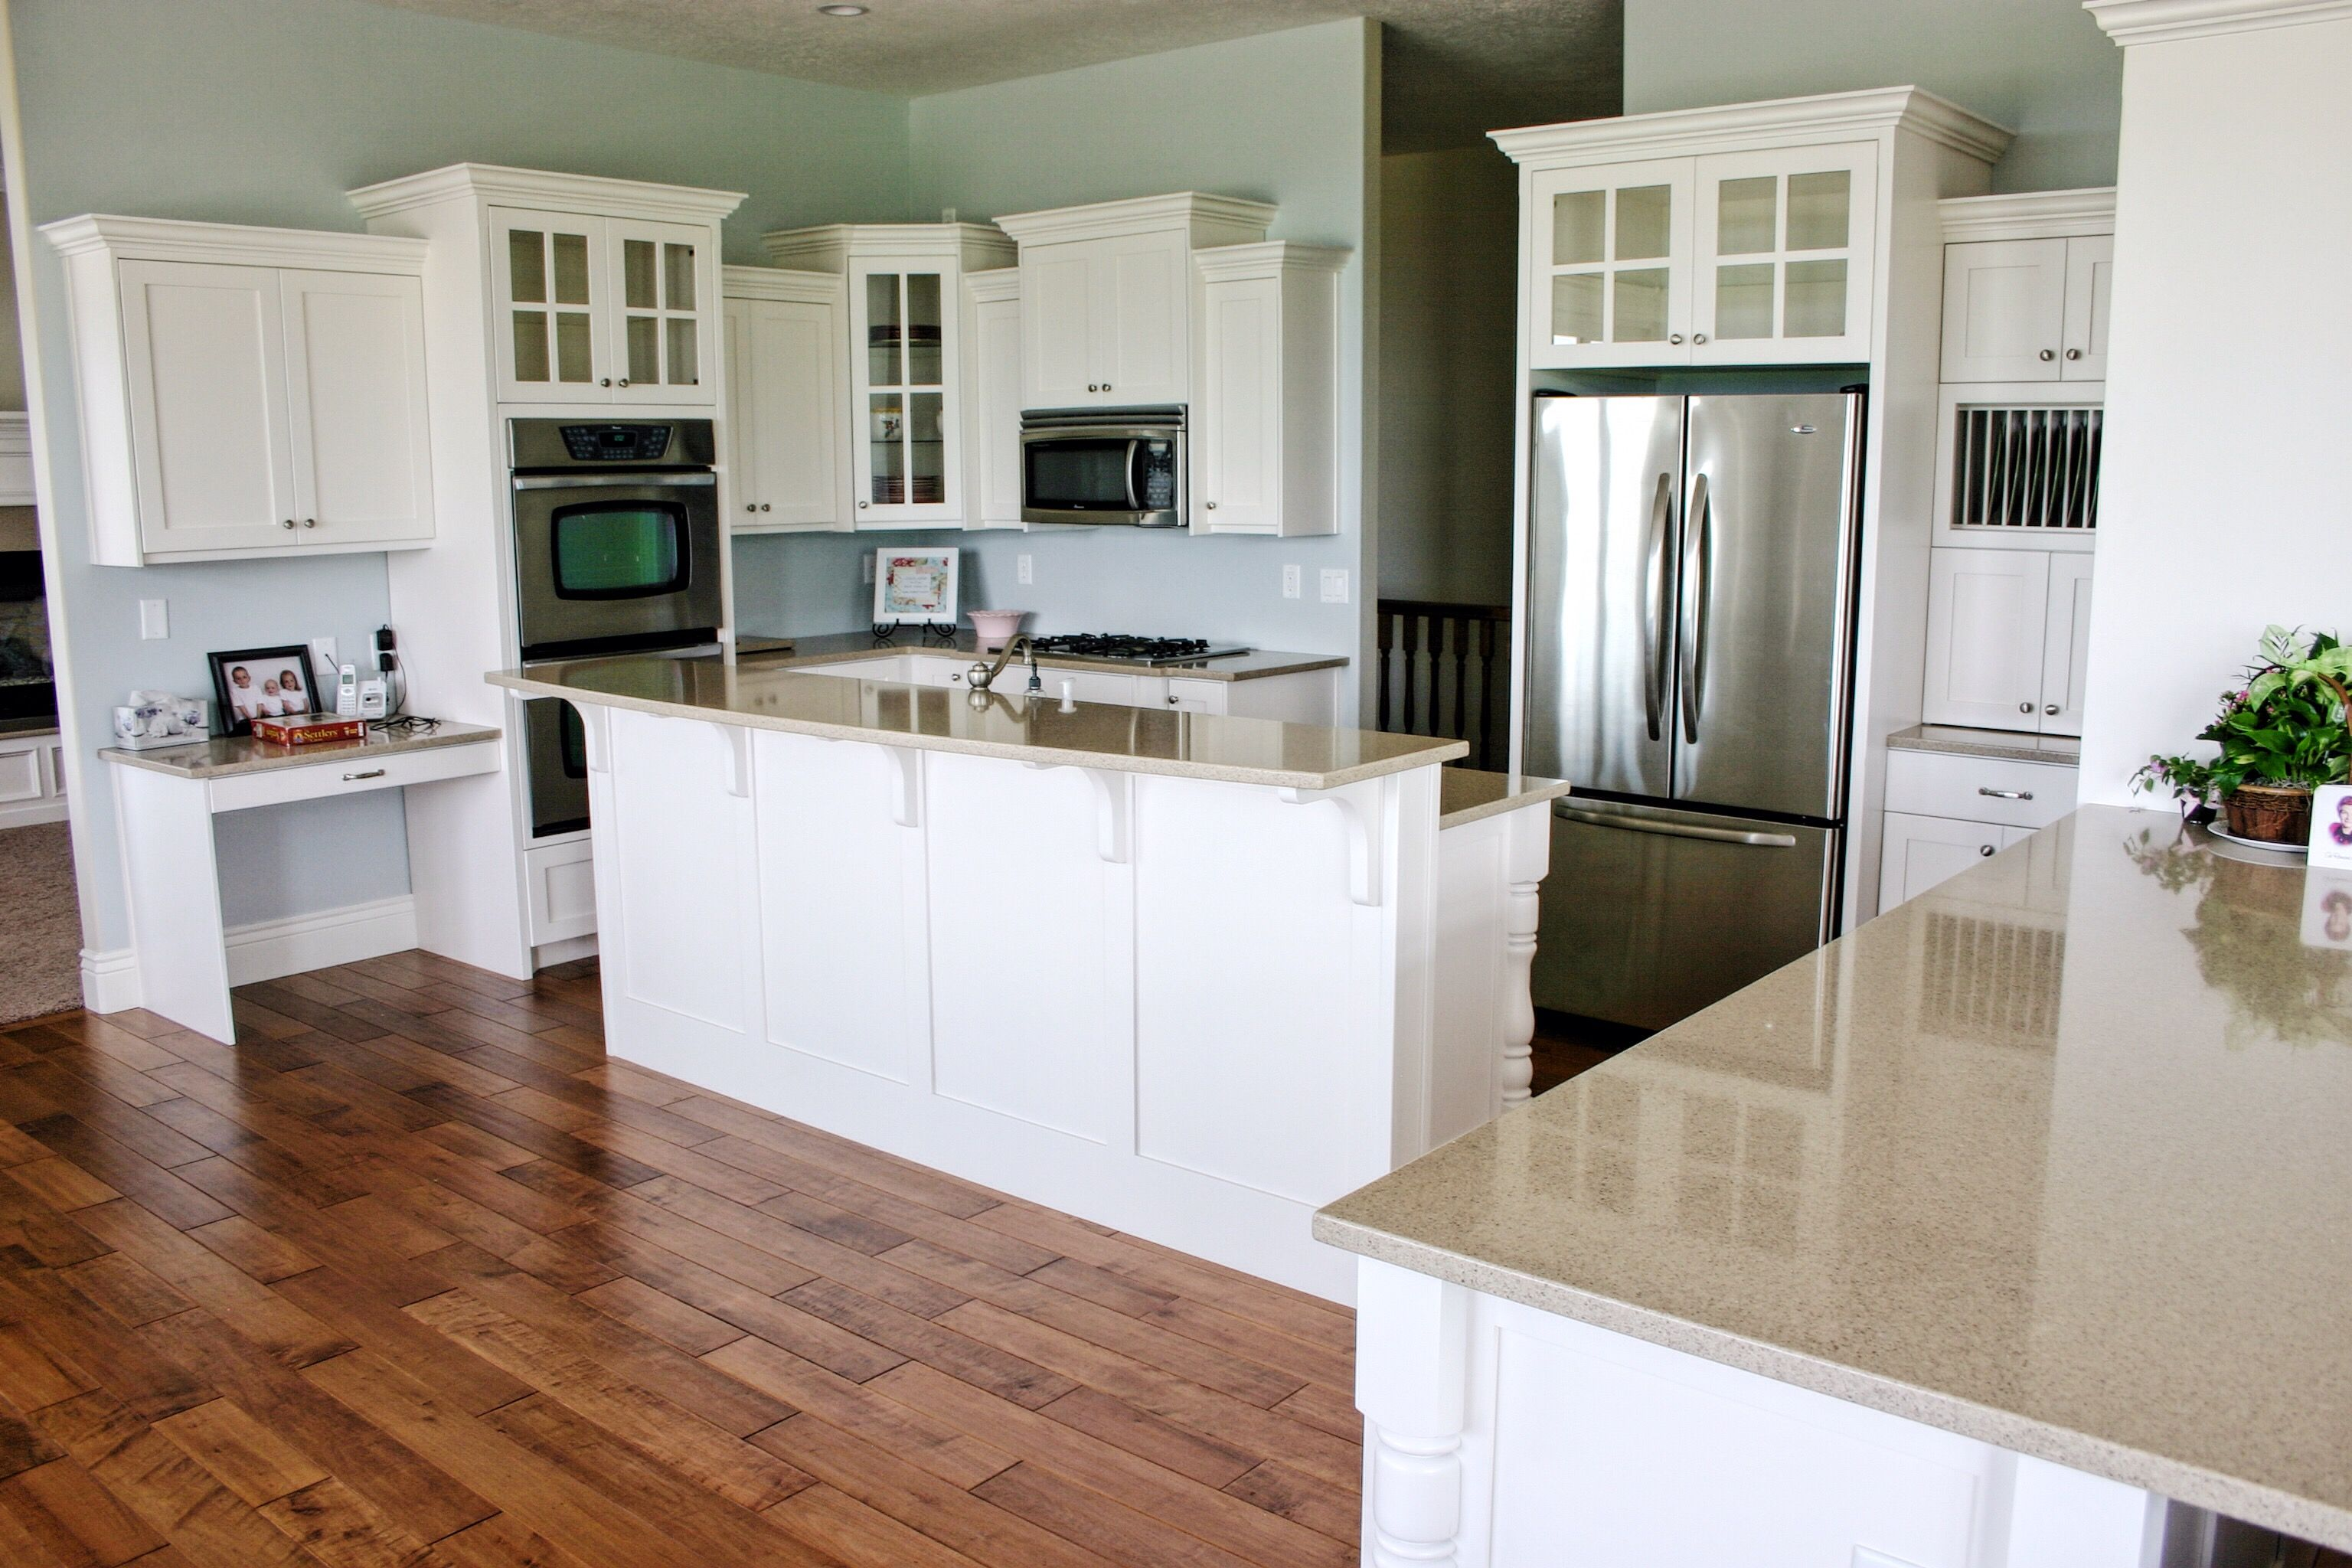 Kitchen cabinets by Premier Cabinets of Northern Utah